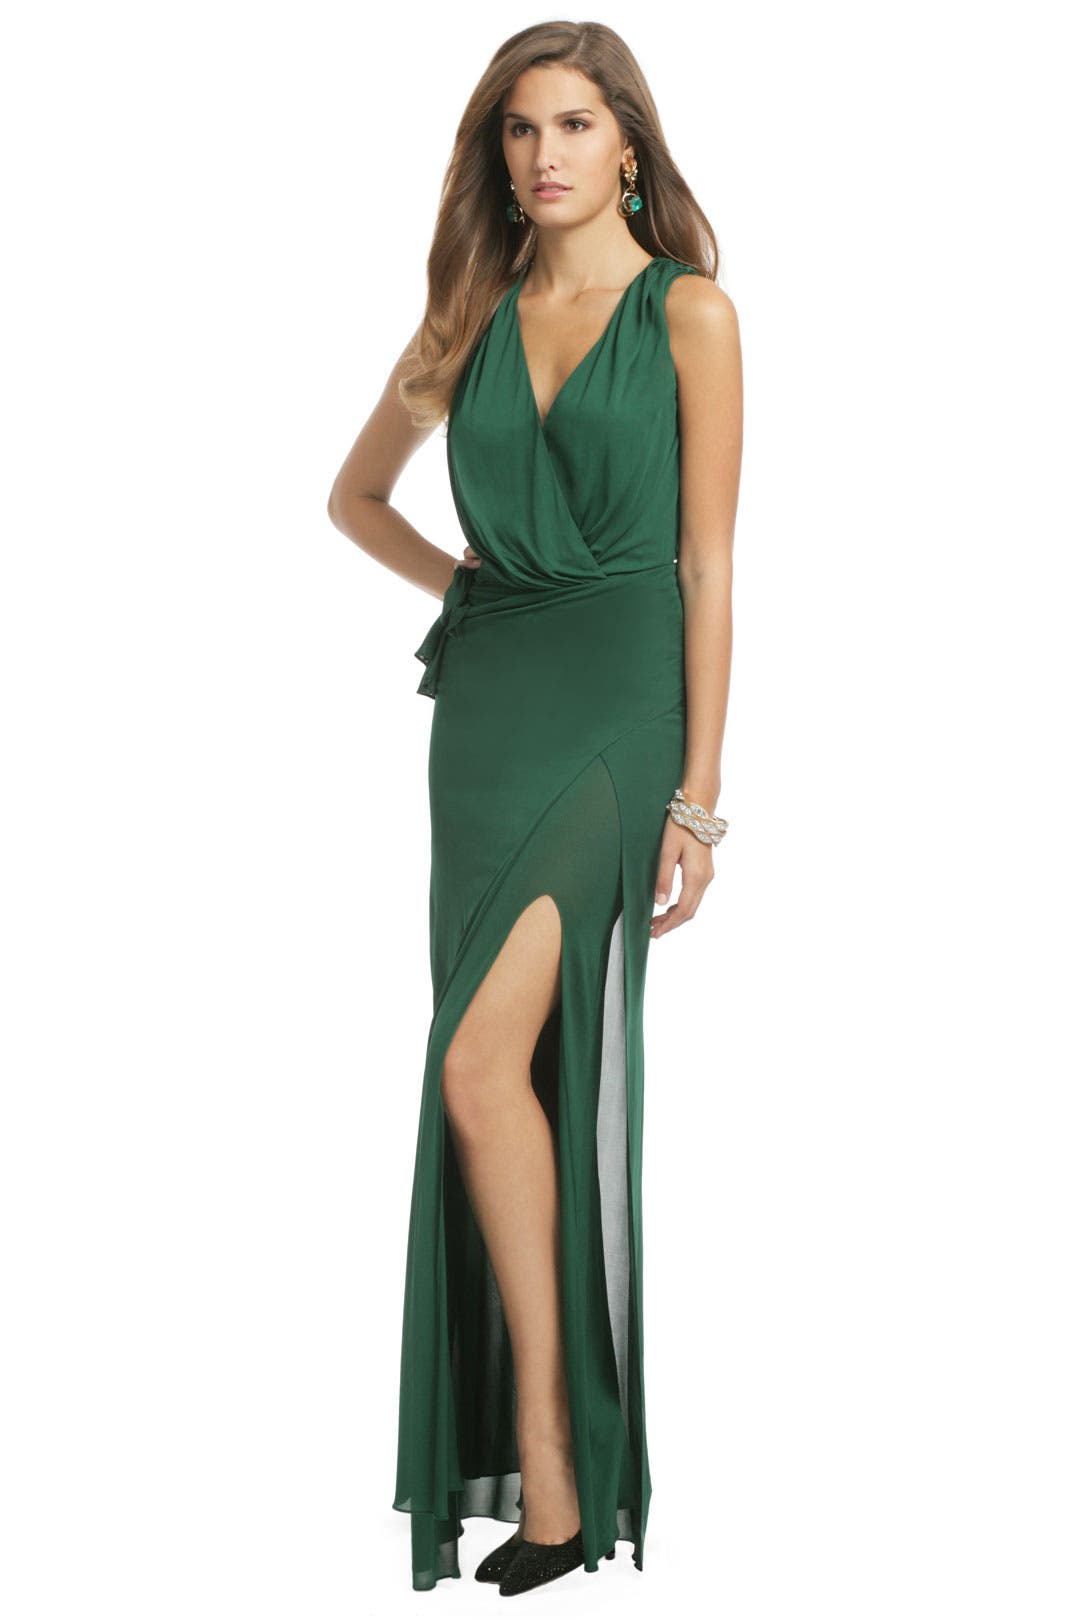 Wrap Around Me Gown by Haute Hippie